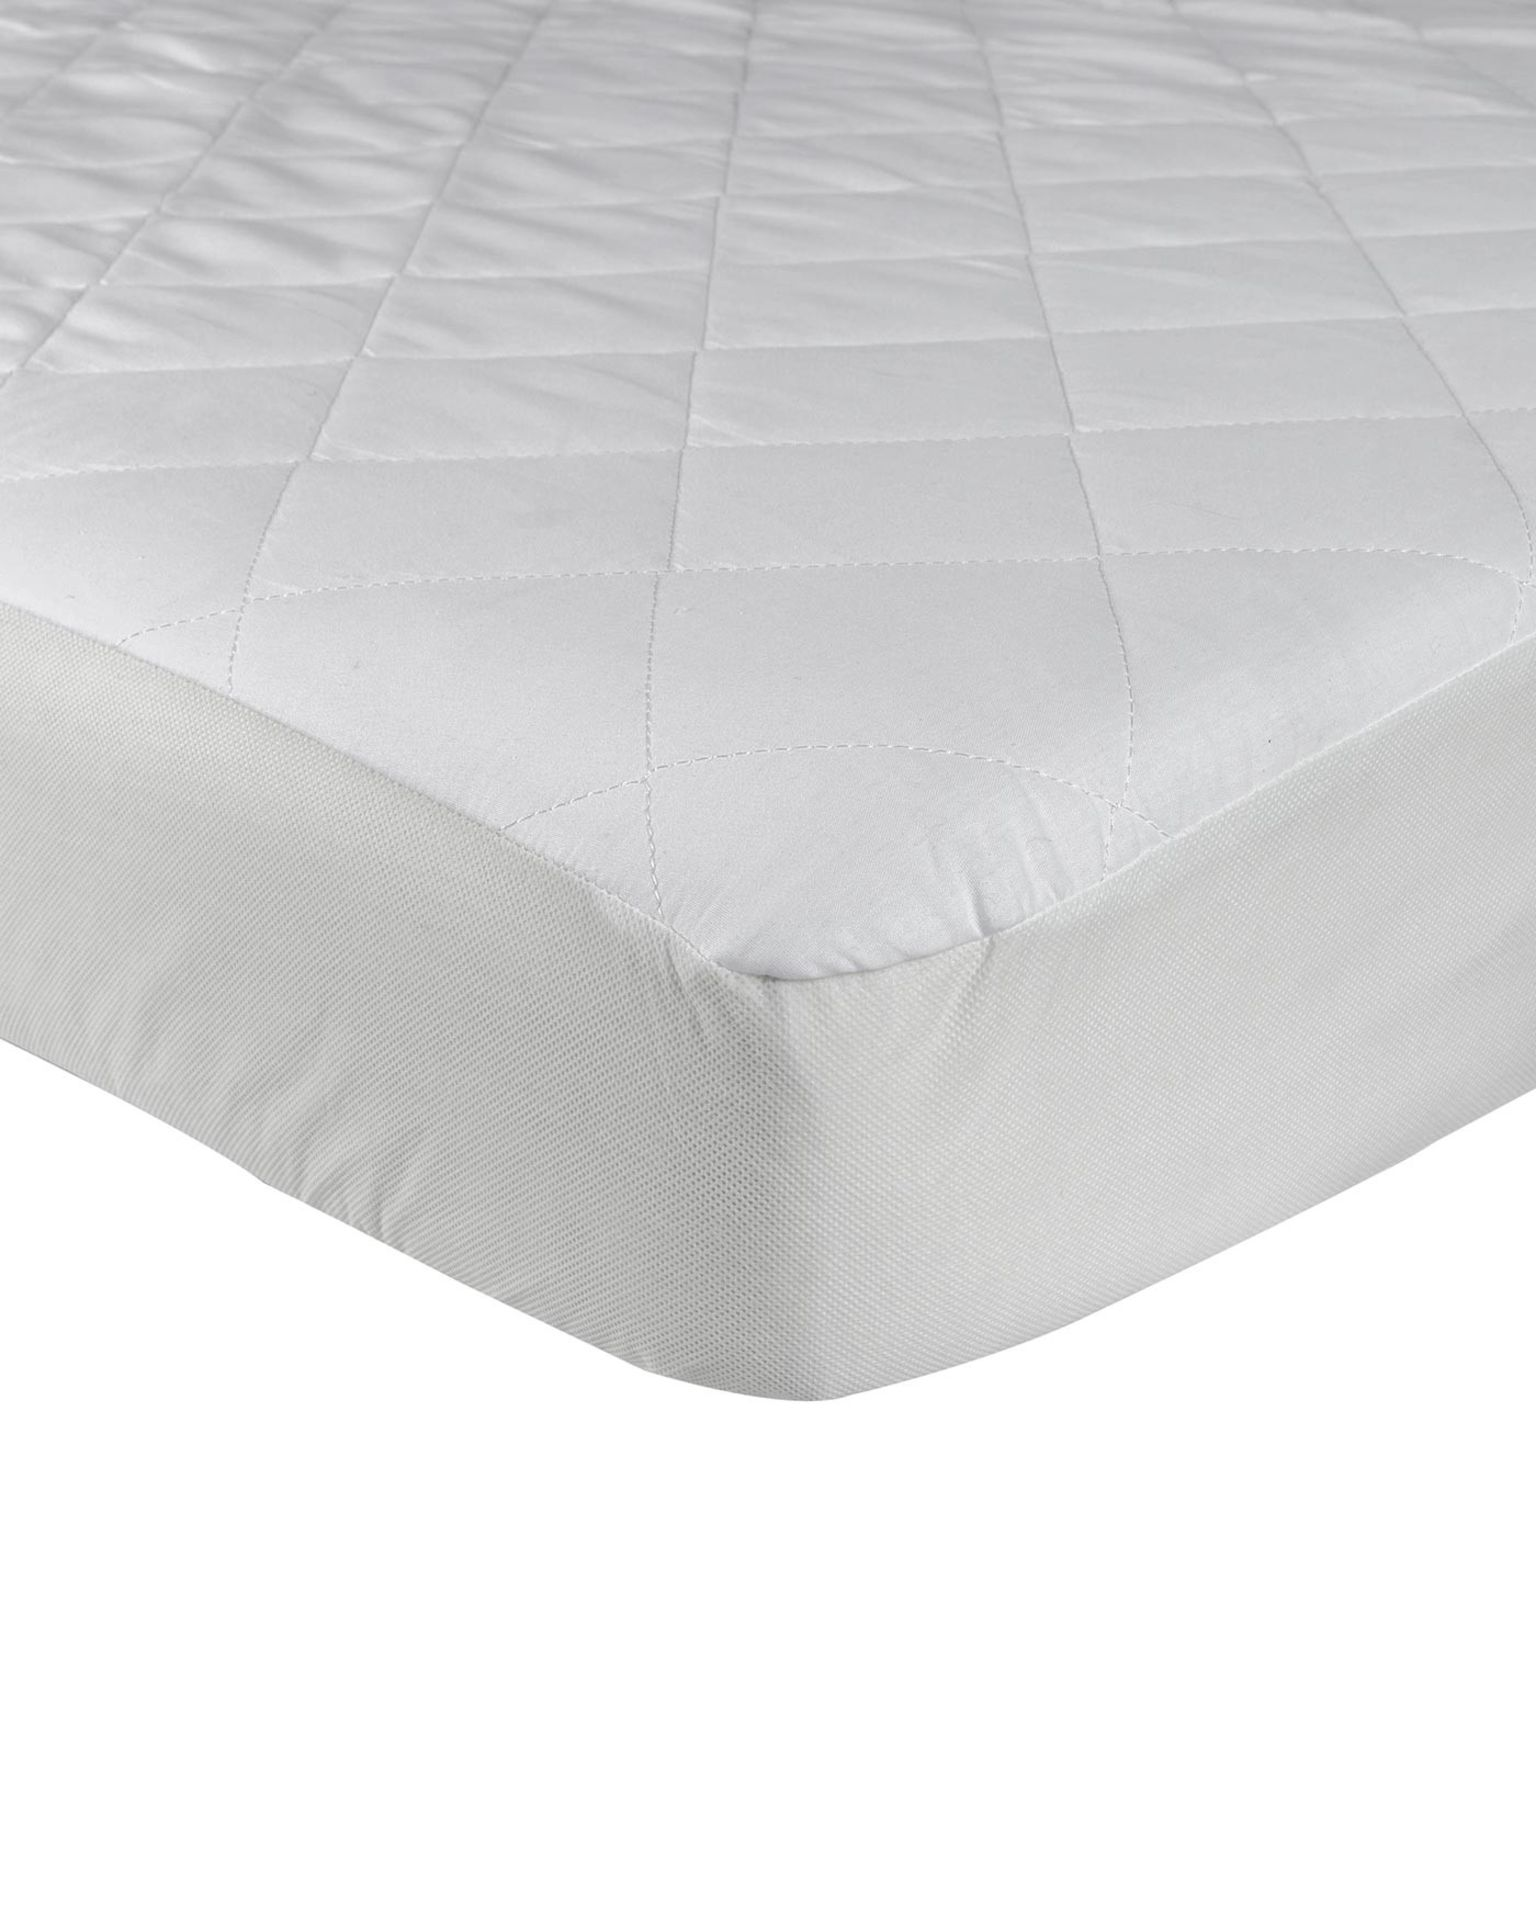 + VAT Brand New Extra Deep Luxury Quilted Fitted Single Bed Mattress Protector 33cm